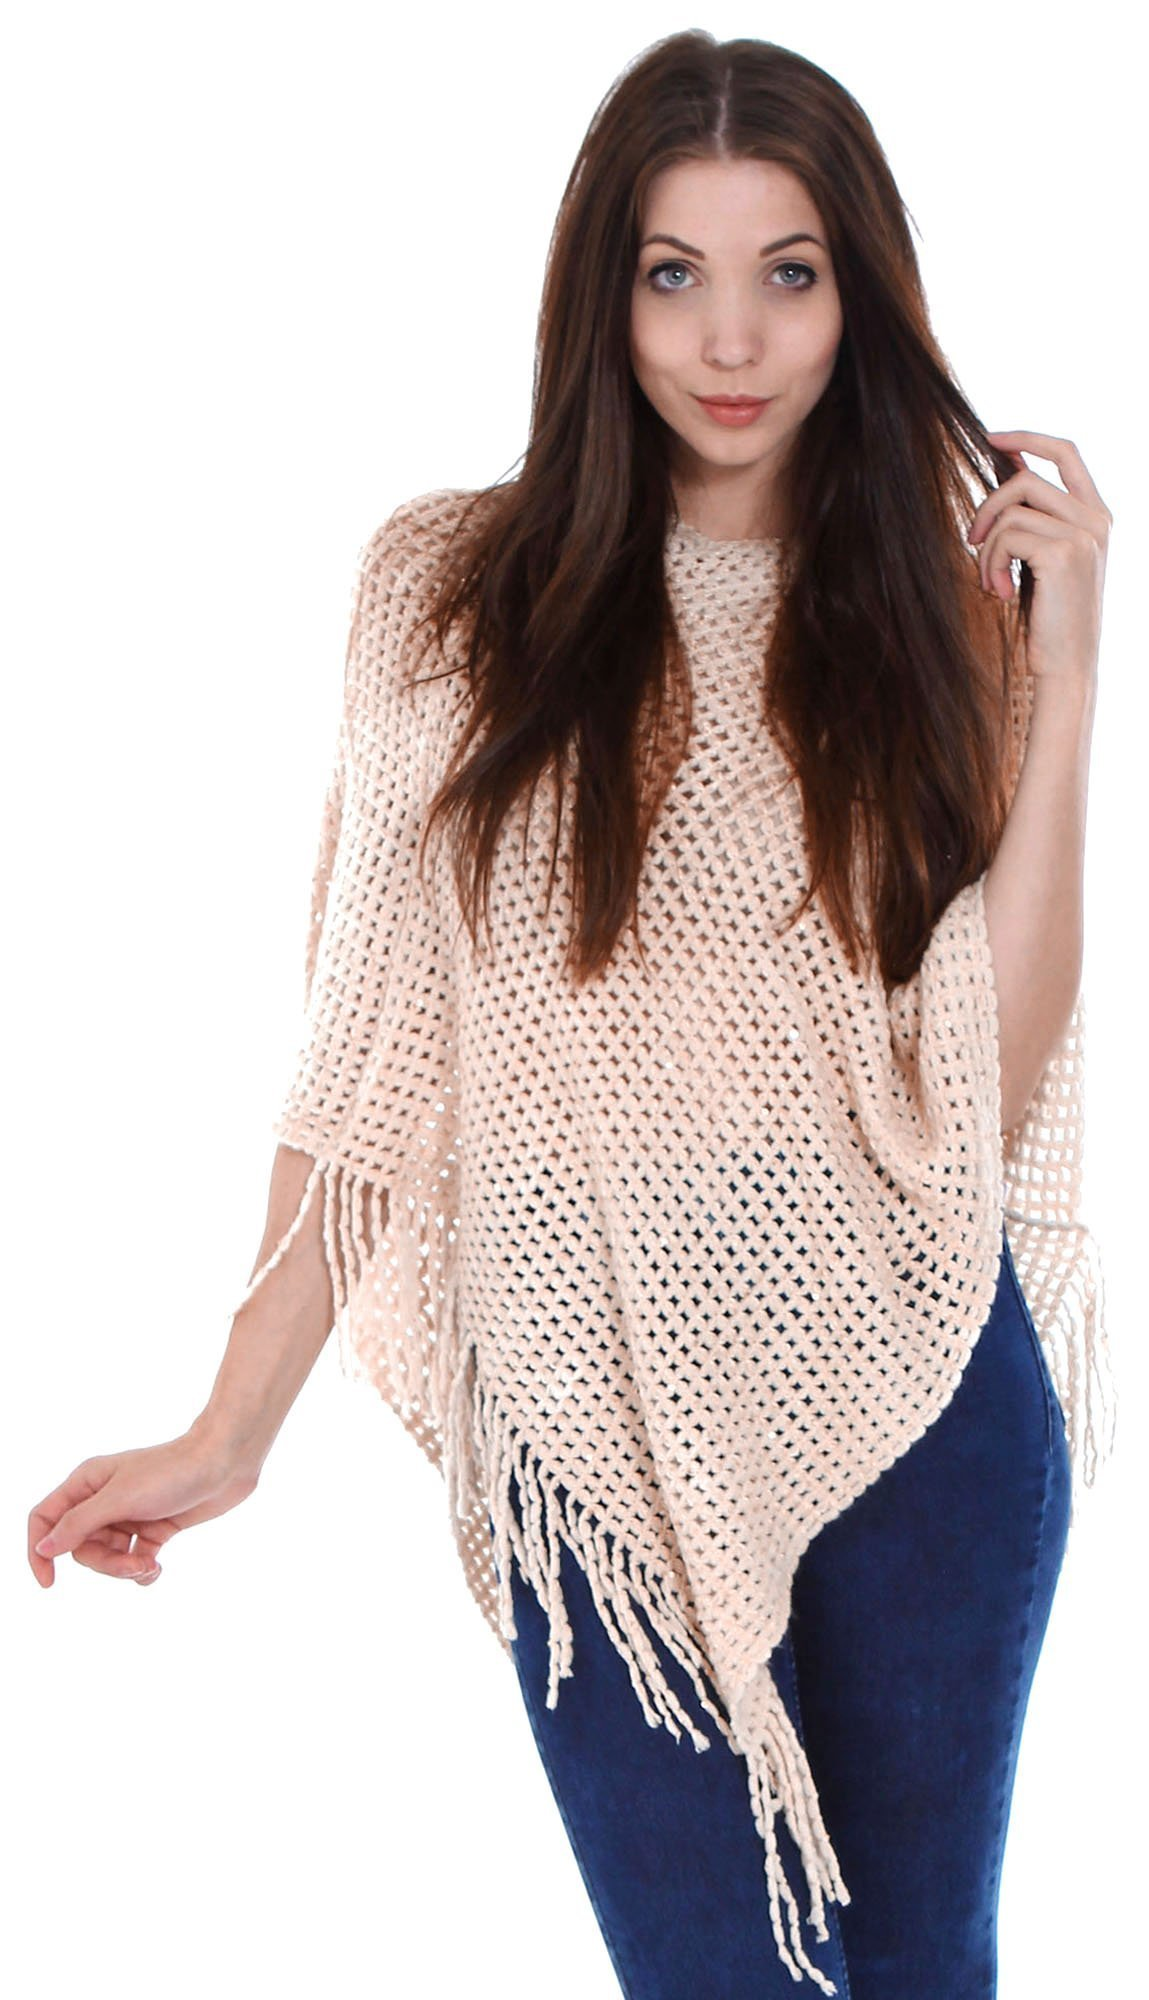 Simplicity New Women Knitted Tassel Poncho Cape Sweater Top Shawl Wrap